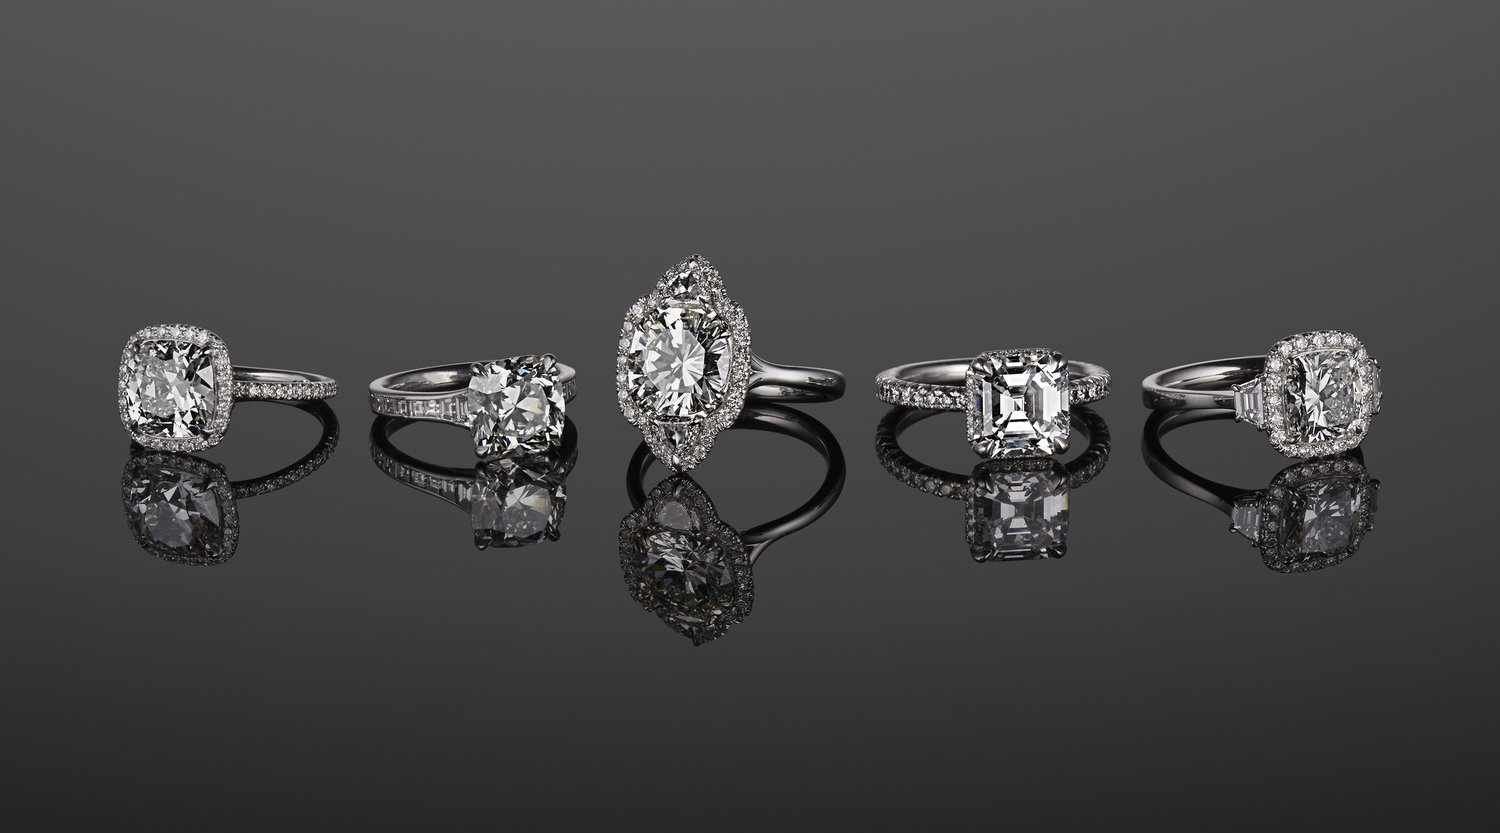 jewelers engagement jewellery judith custom arnell marthaller ring rings products pamela